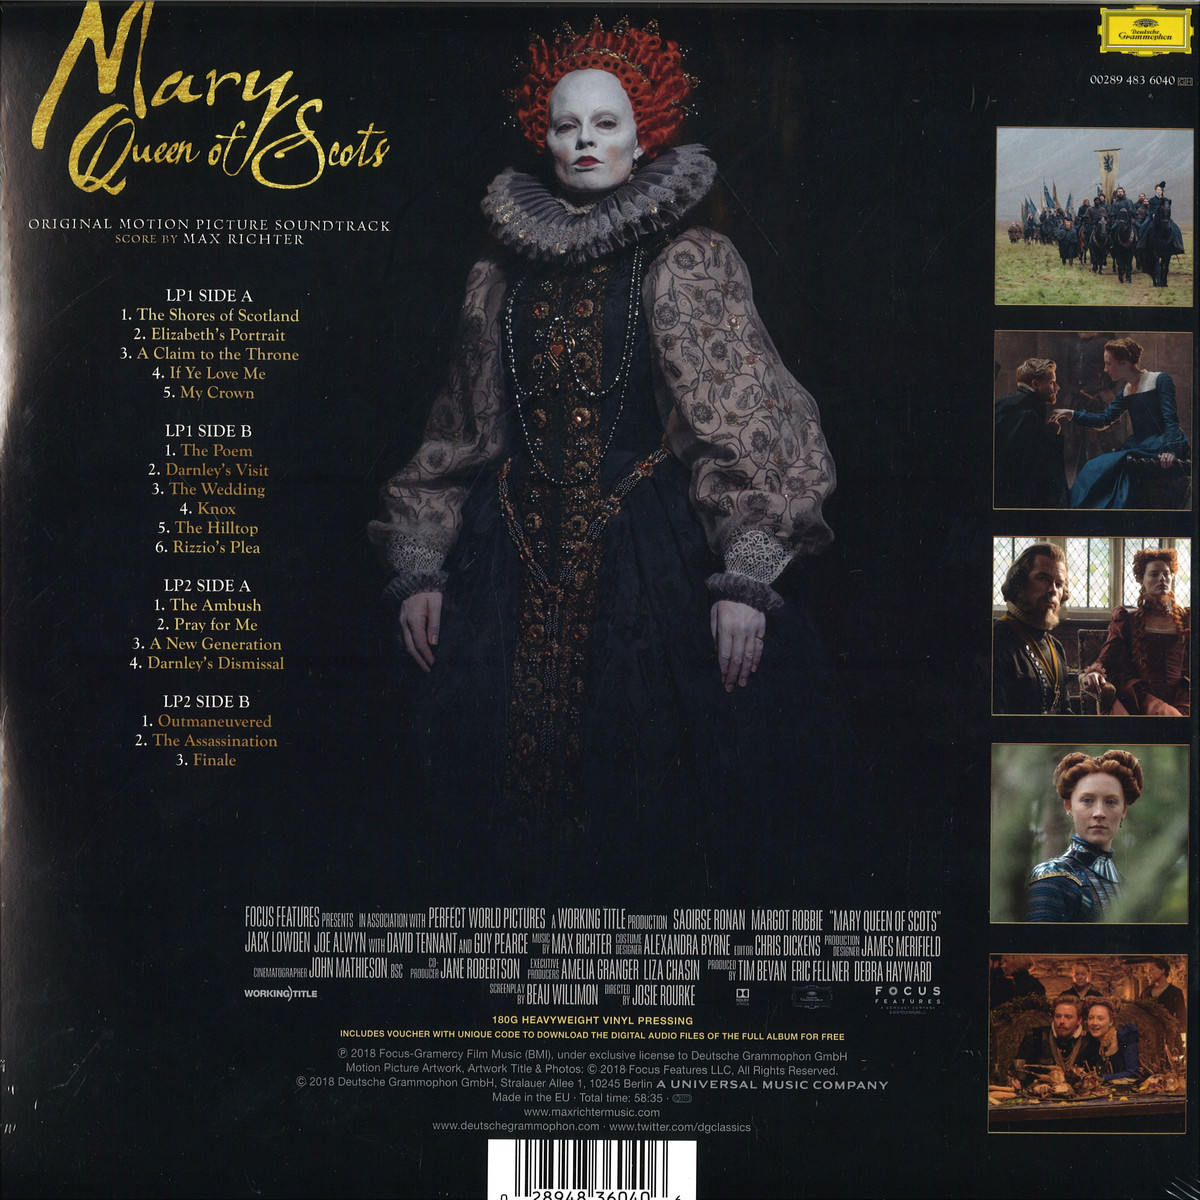 Mary queen of scots soundtrack